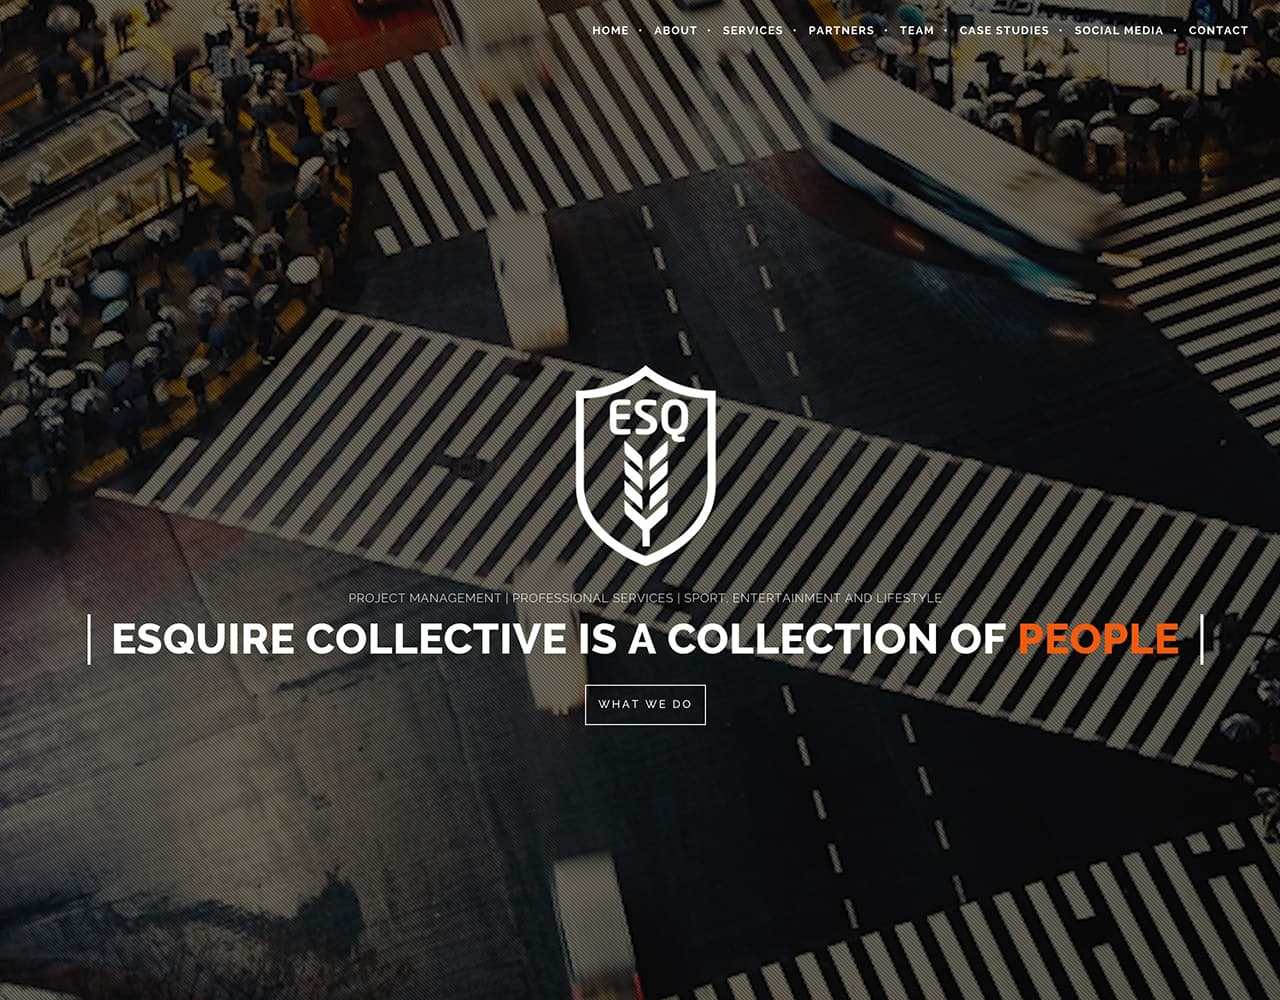 Esquire Collective